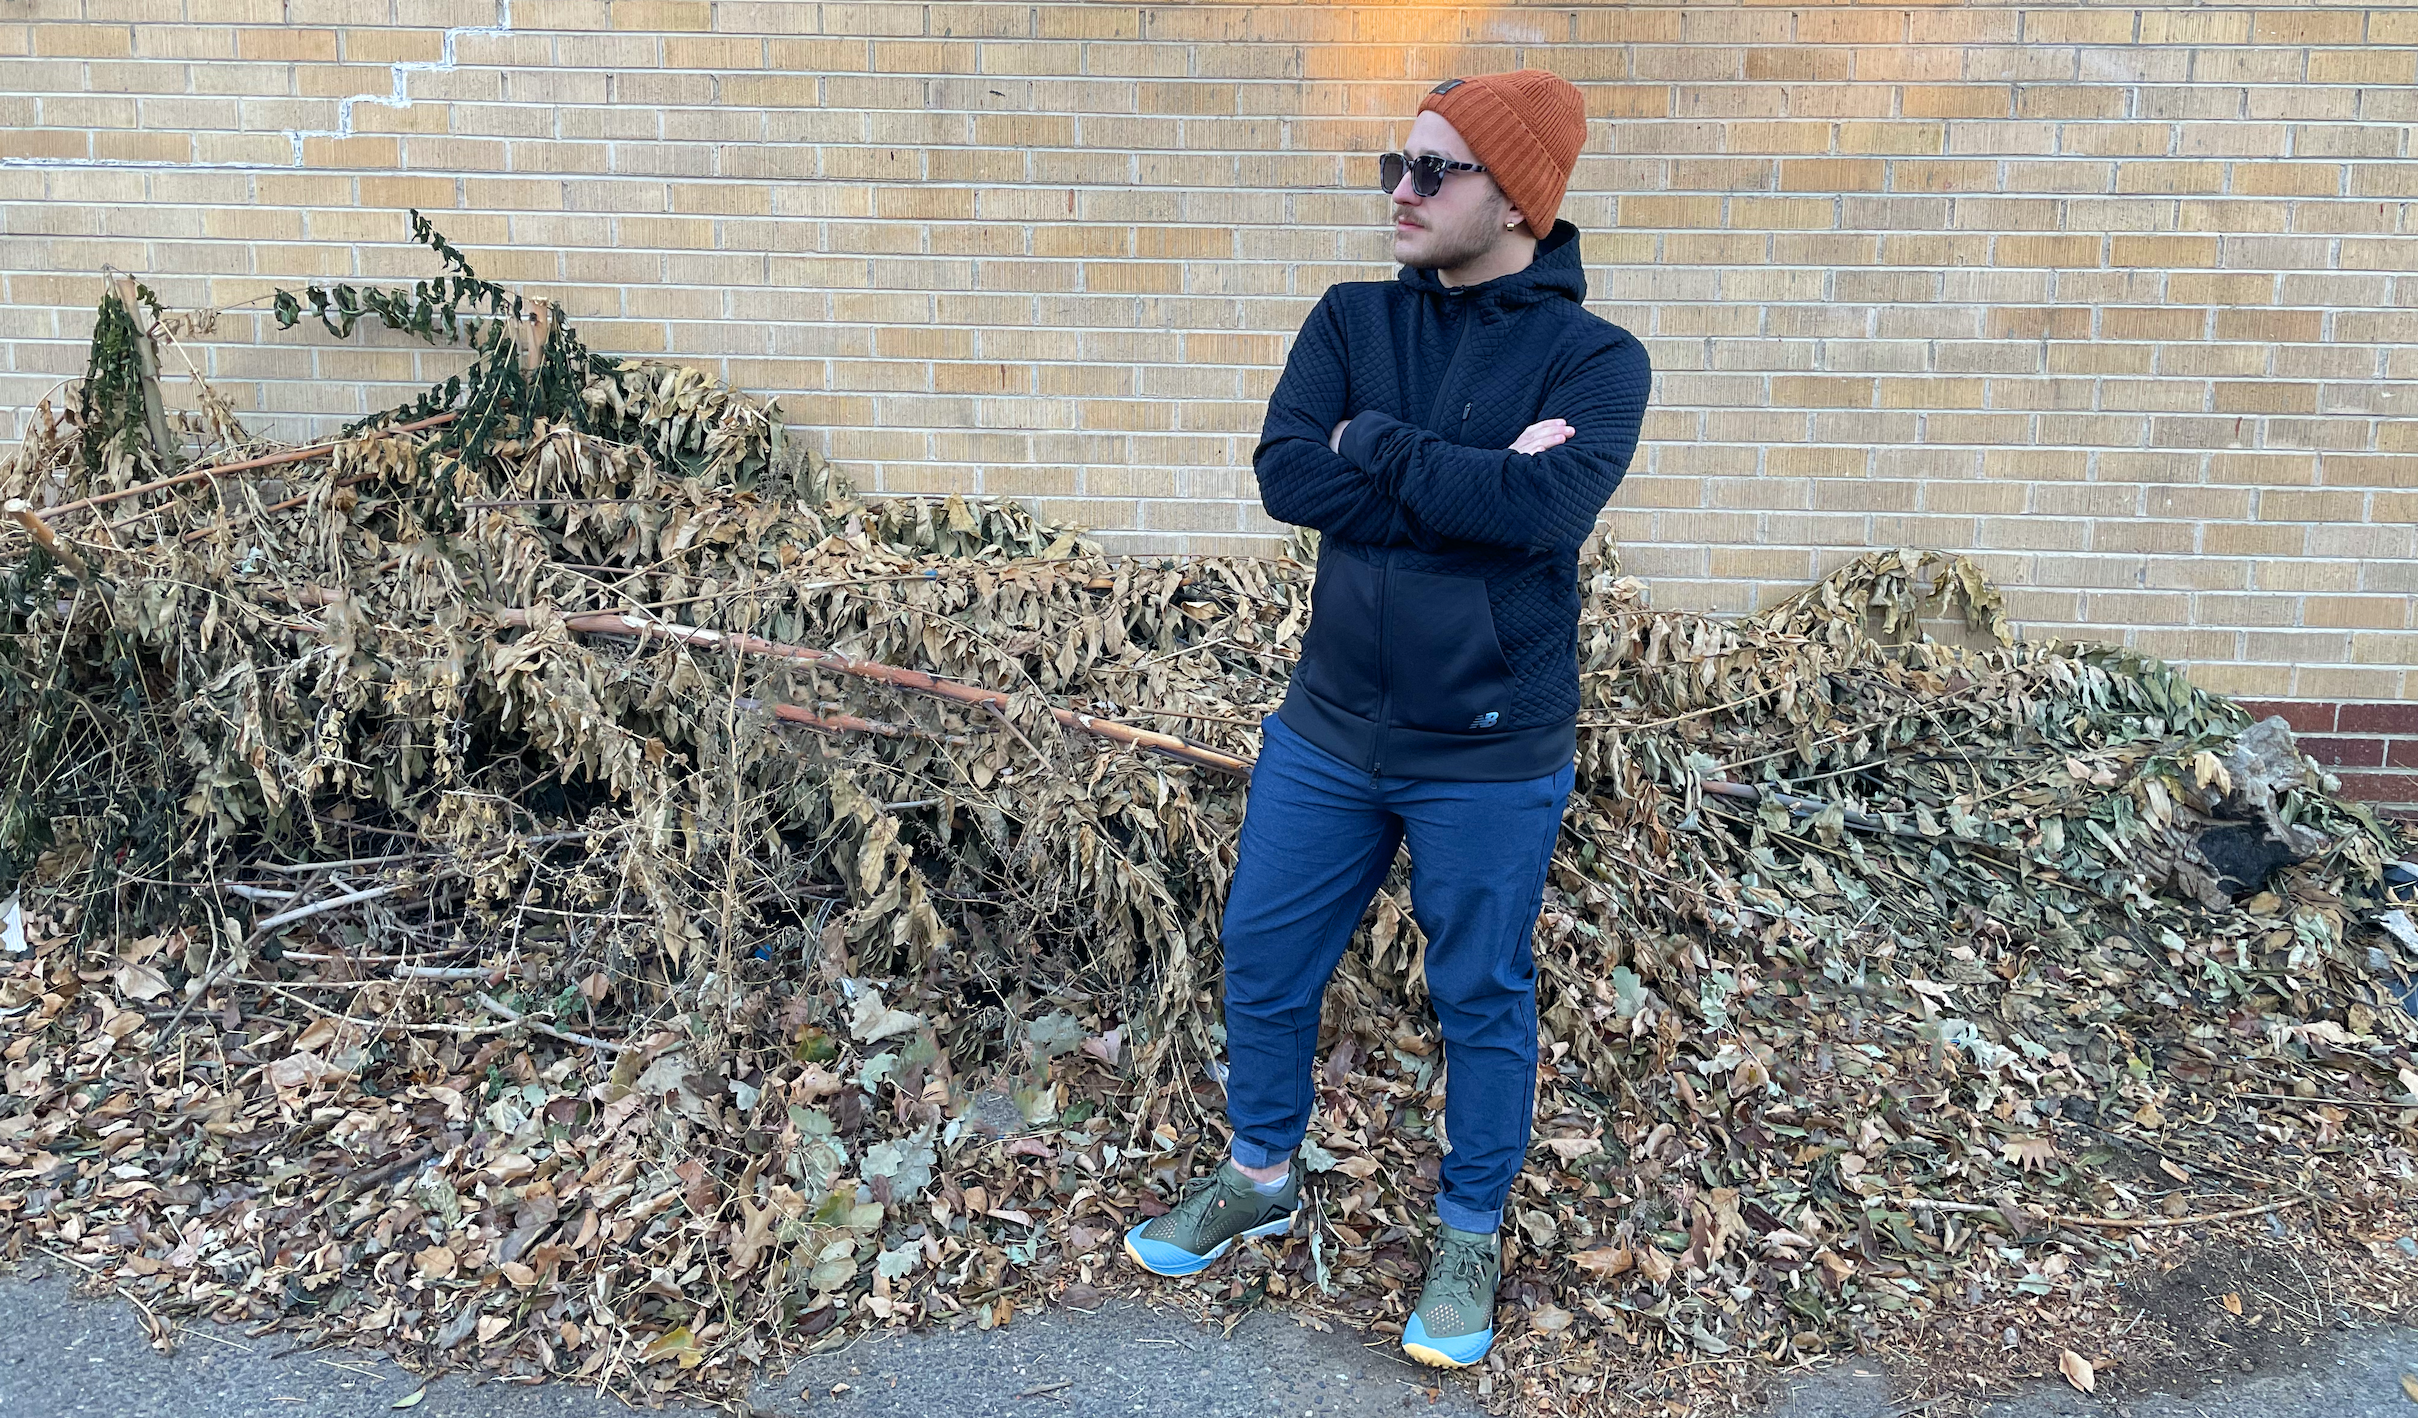 man in front of a building with a lot of fallen leaves wearing an orange beanie, blue jacket, blue pants, and olive sneakers and sunglasses